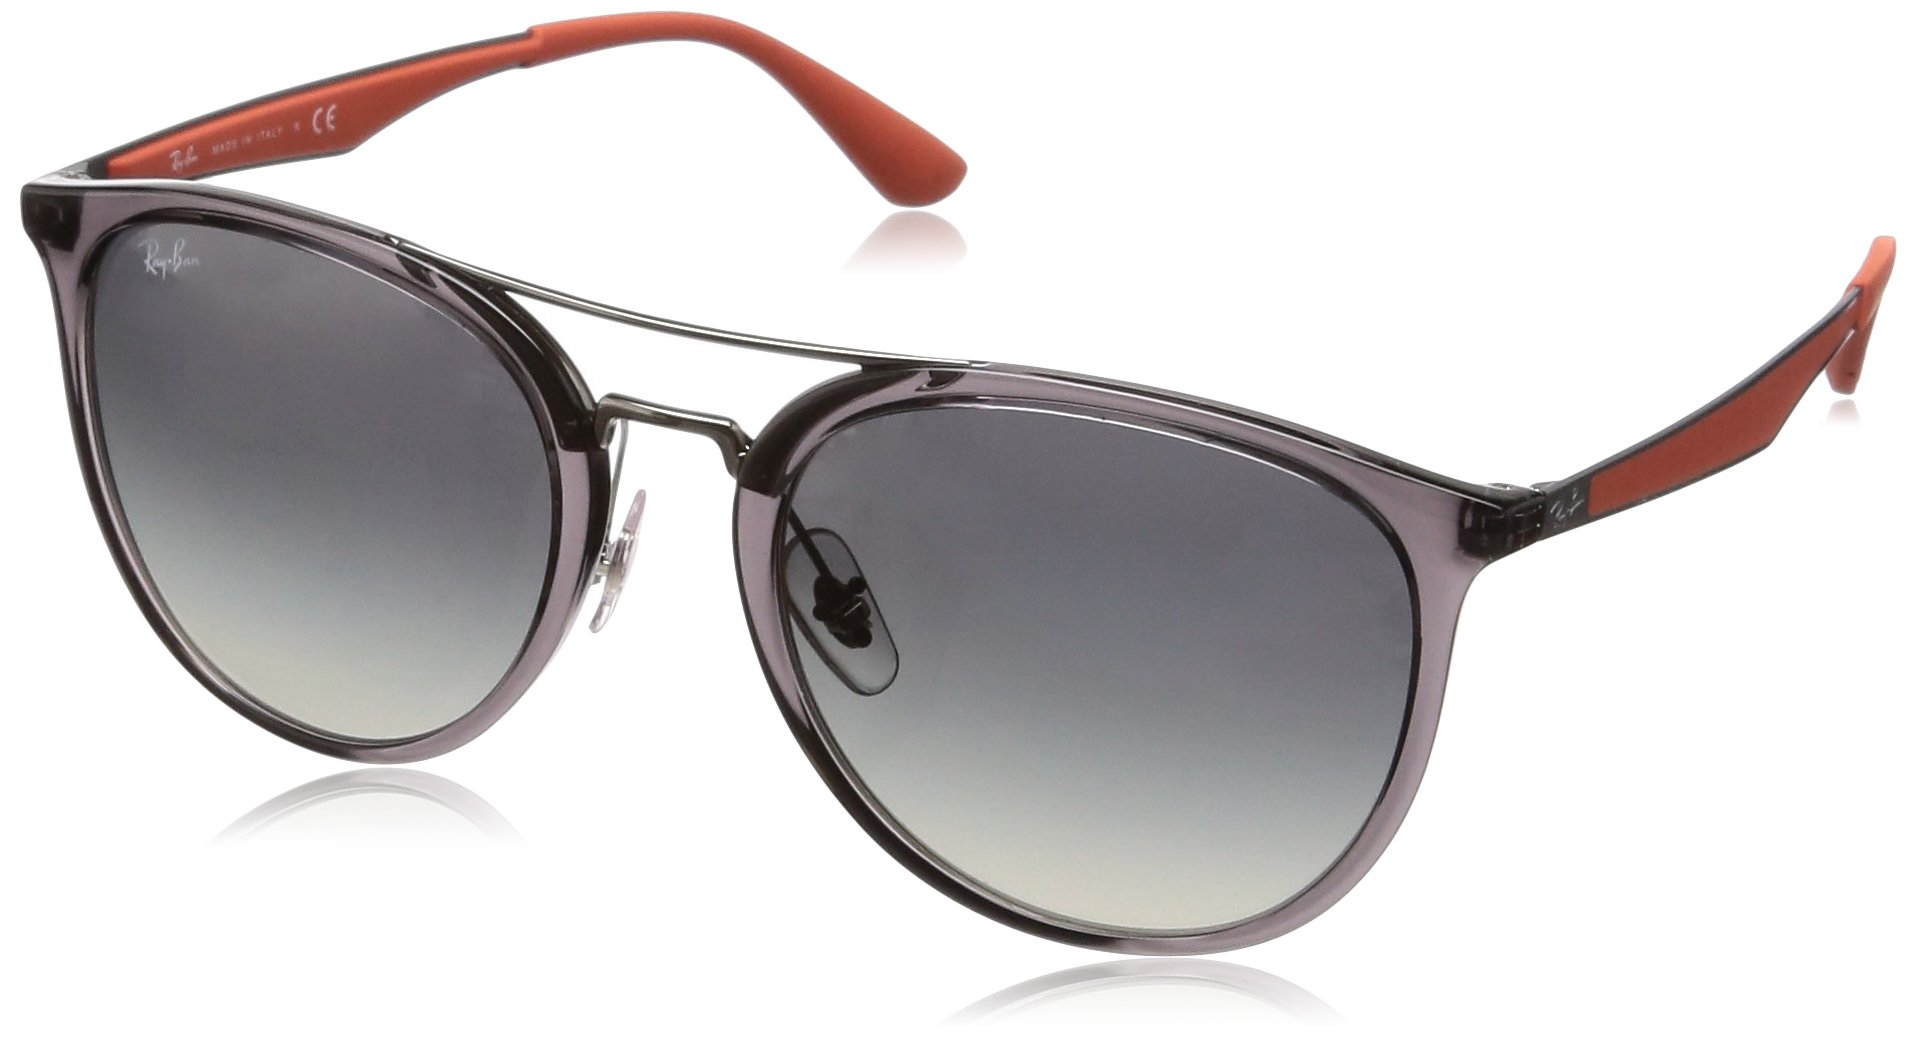 Ray-Ban RB4285 Square Sunglasses, Transparent Grey/Grey Gradient, 55 mm